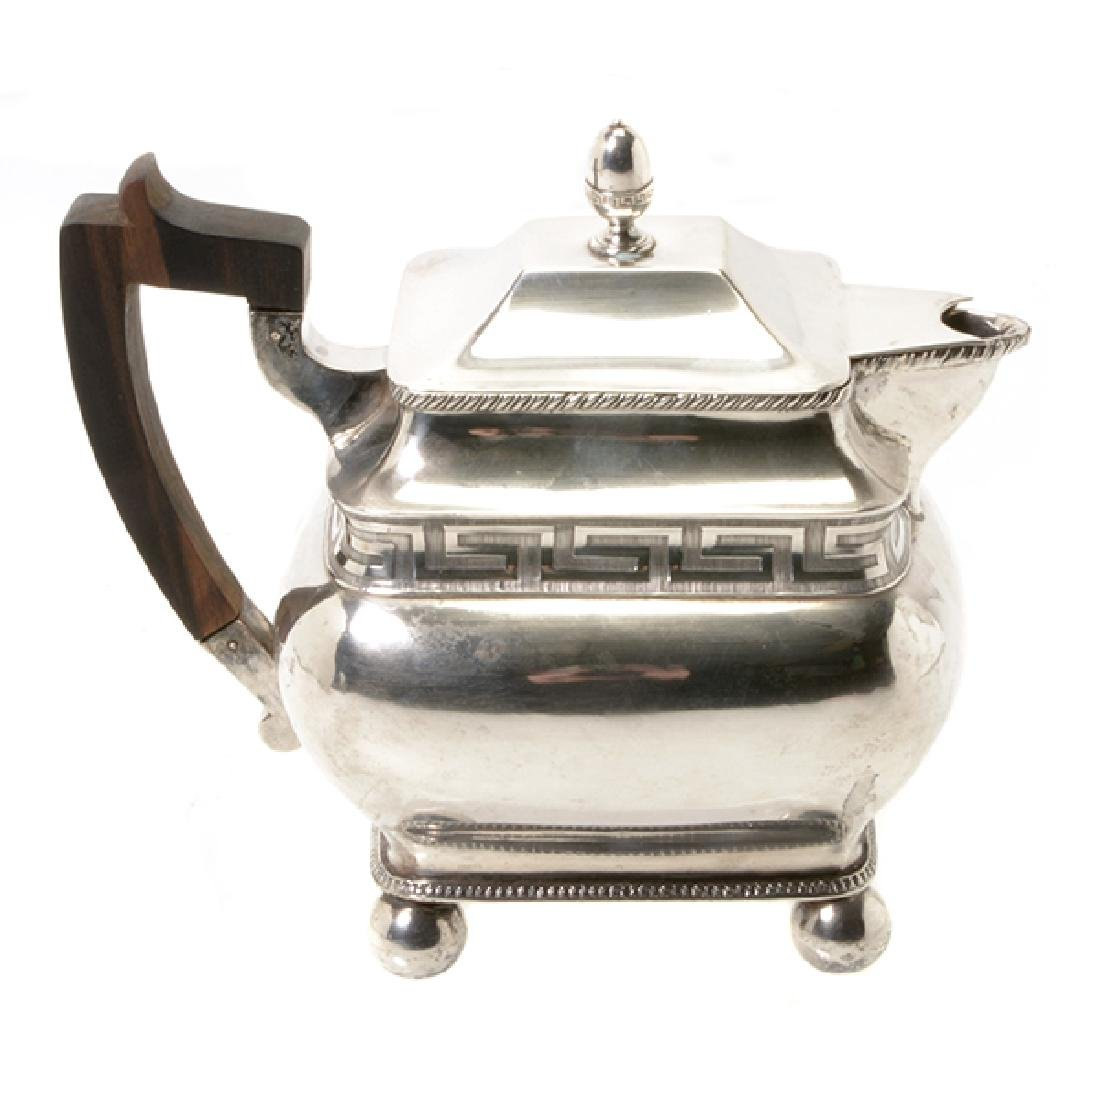 Federal James Black Philadelphia Silver Teapot, c.1795